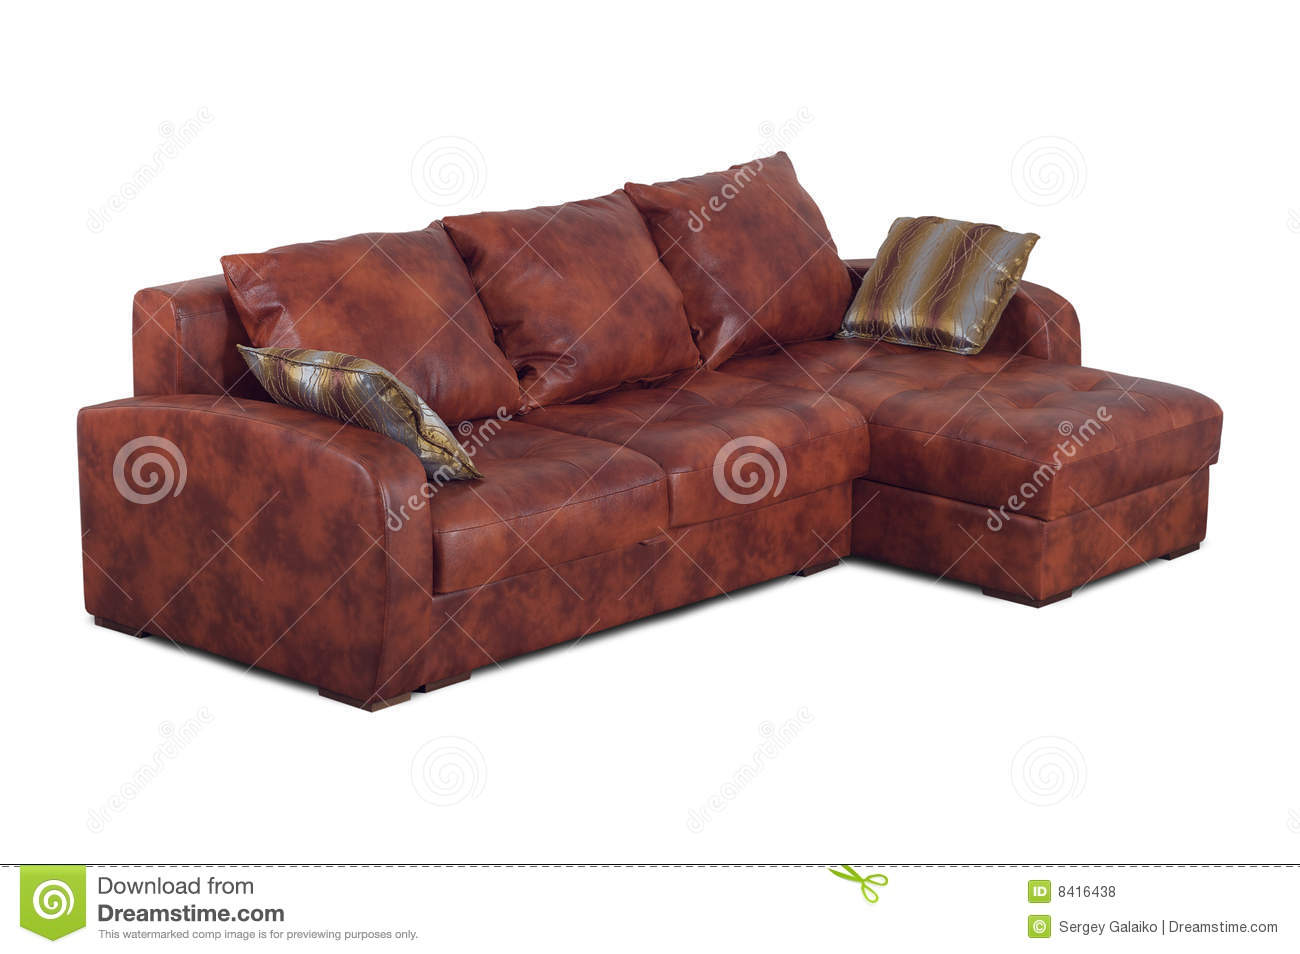 Pillows for brown leather sofa steve silver chateau leather sofa with 2 accent pillows Leather sofa throws